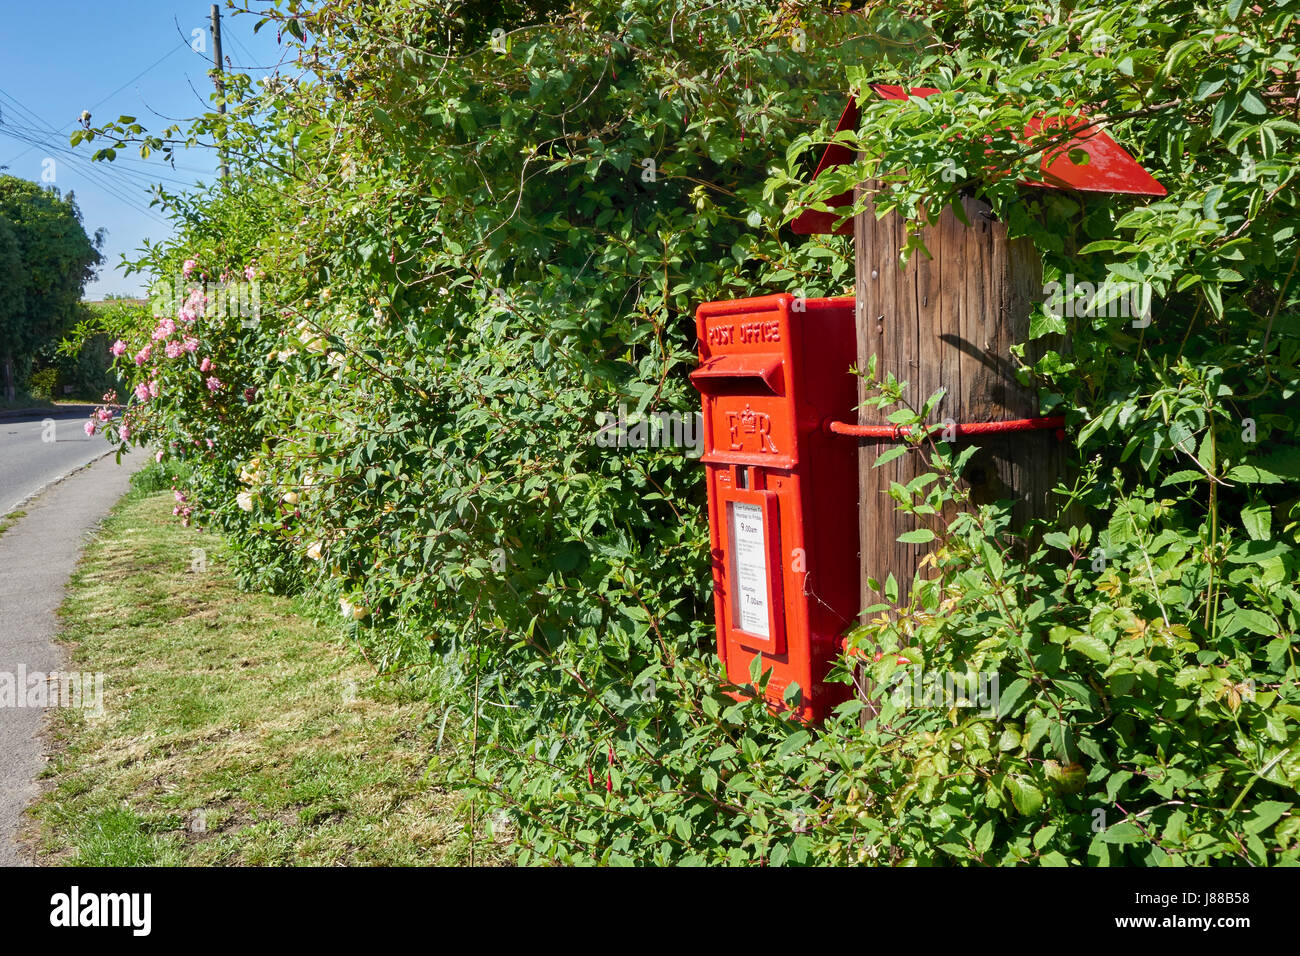 Freshly painted Royal Mail rural postbox set among roses on a country road at Iden in East Sussex, England UK - Stock Image